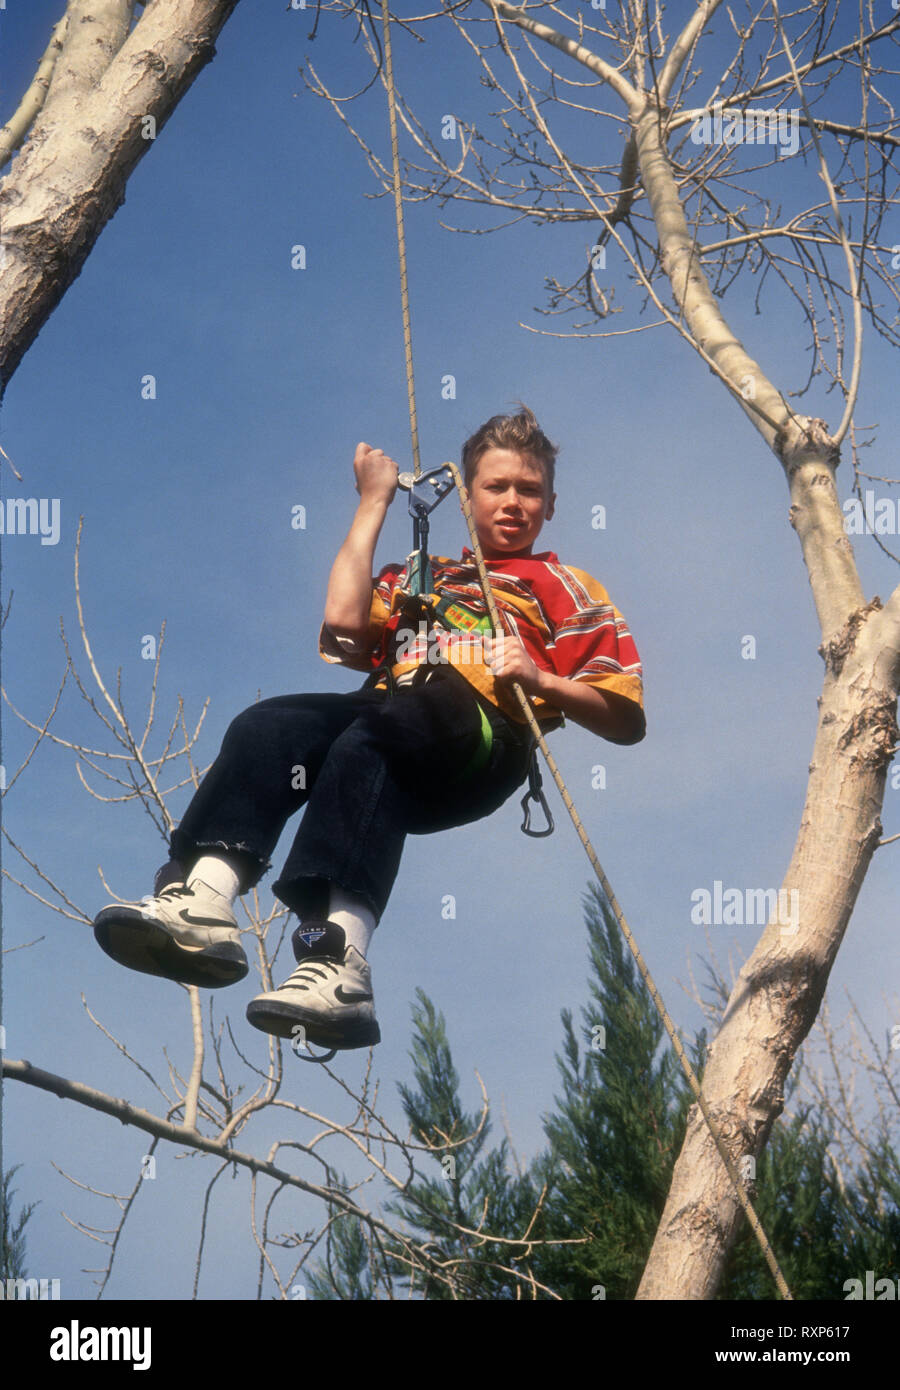 LOS ANGELES, CA - FEBRUARY 13: (EXCLUSIVE) Stuntman/actor Mickey Cassidy poses at a photo shoot on February 13, 1994 in Los Angeles, California. Photo by Barry King/Alamy Stock Photo - Stock Image